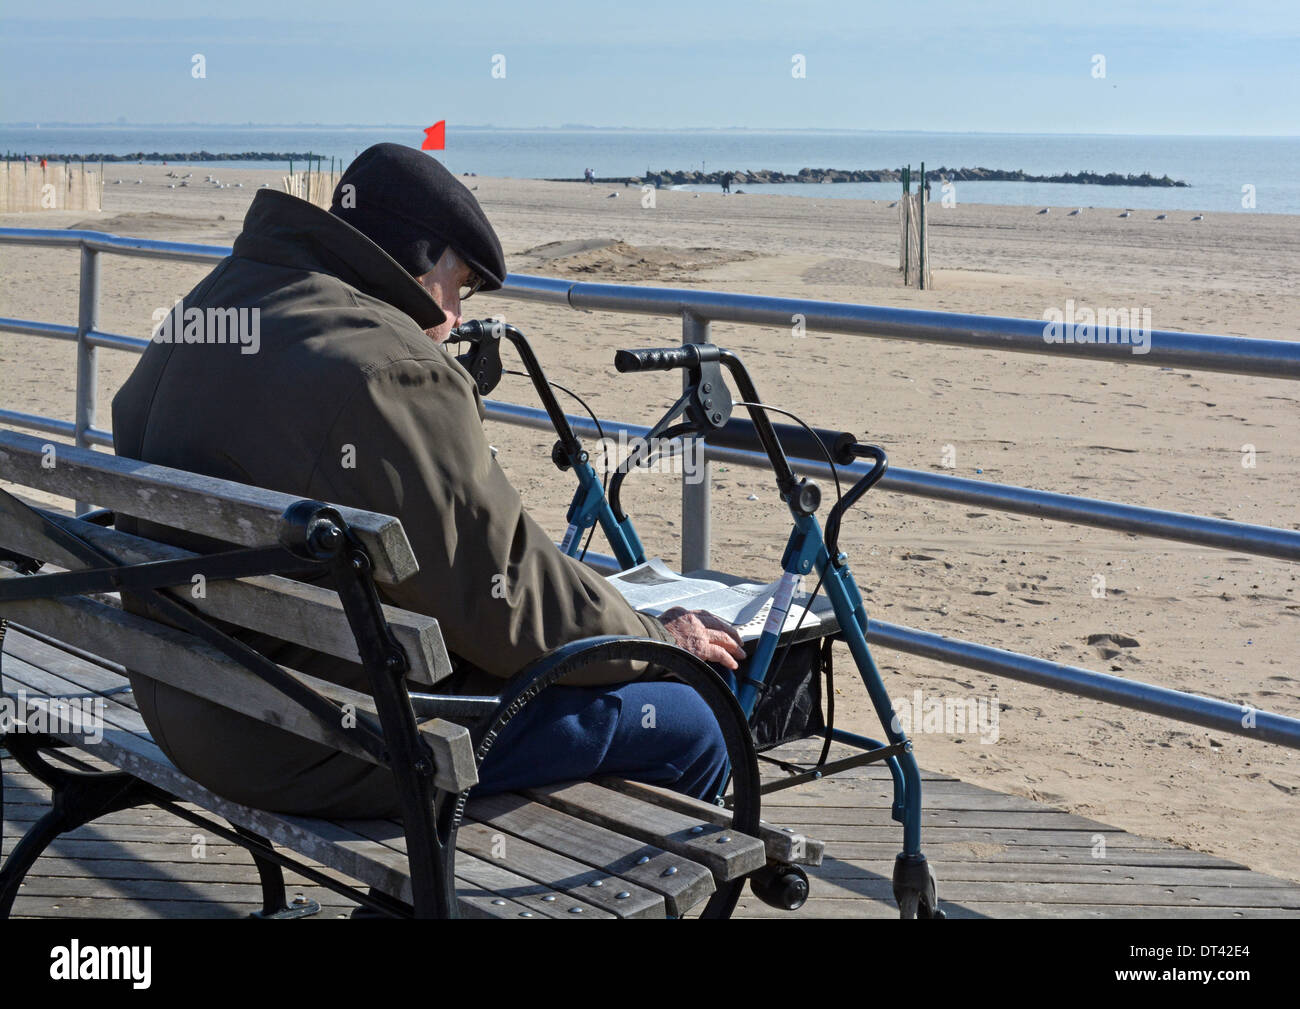 A Russian immigrant reads a magazine on a cold winter day on the boardwalk in Coney Island Brooklyn, New York - Stock Image